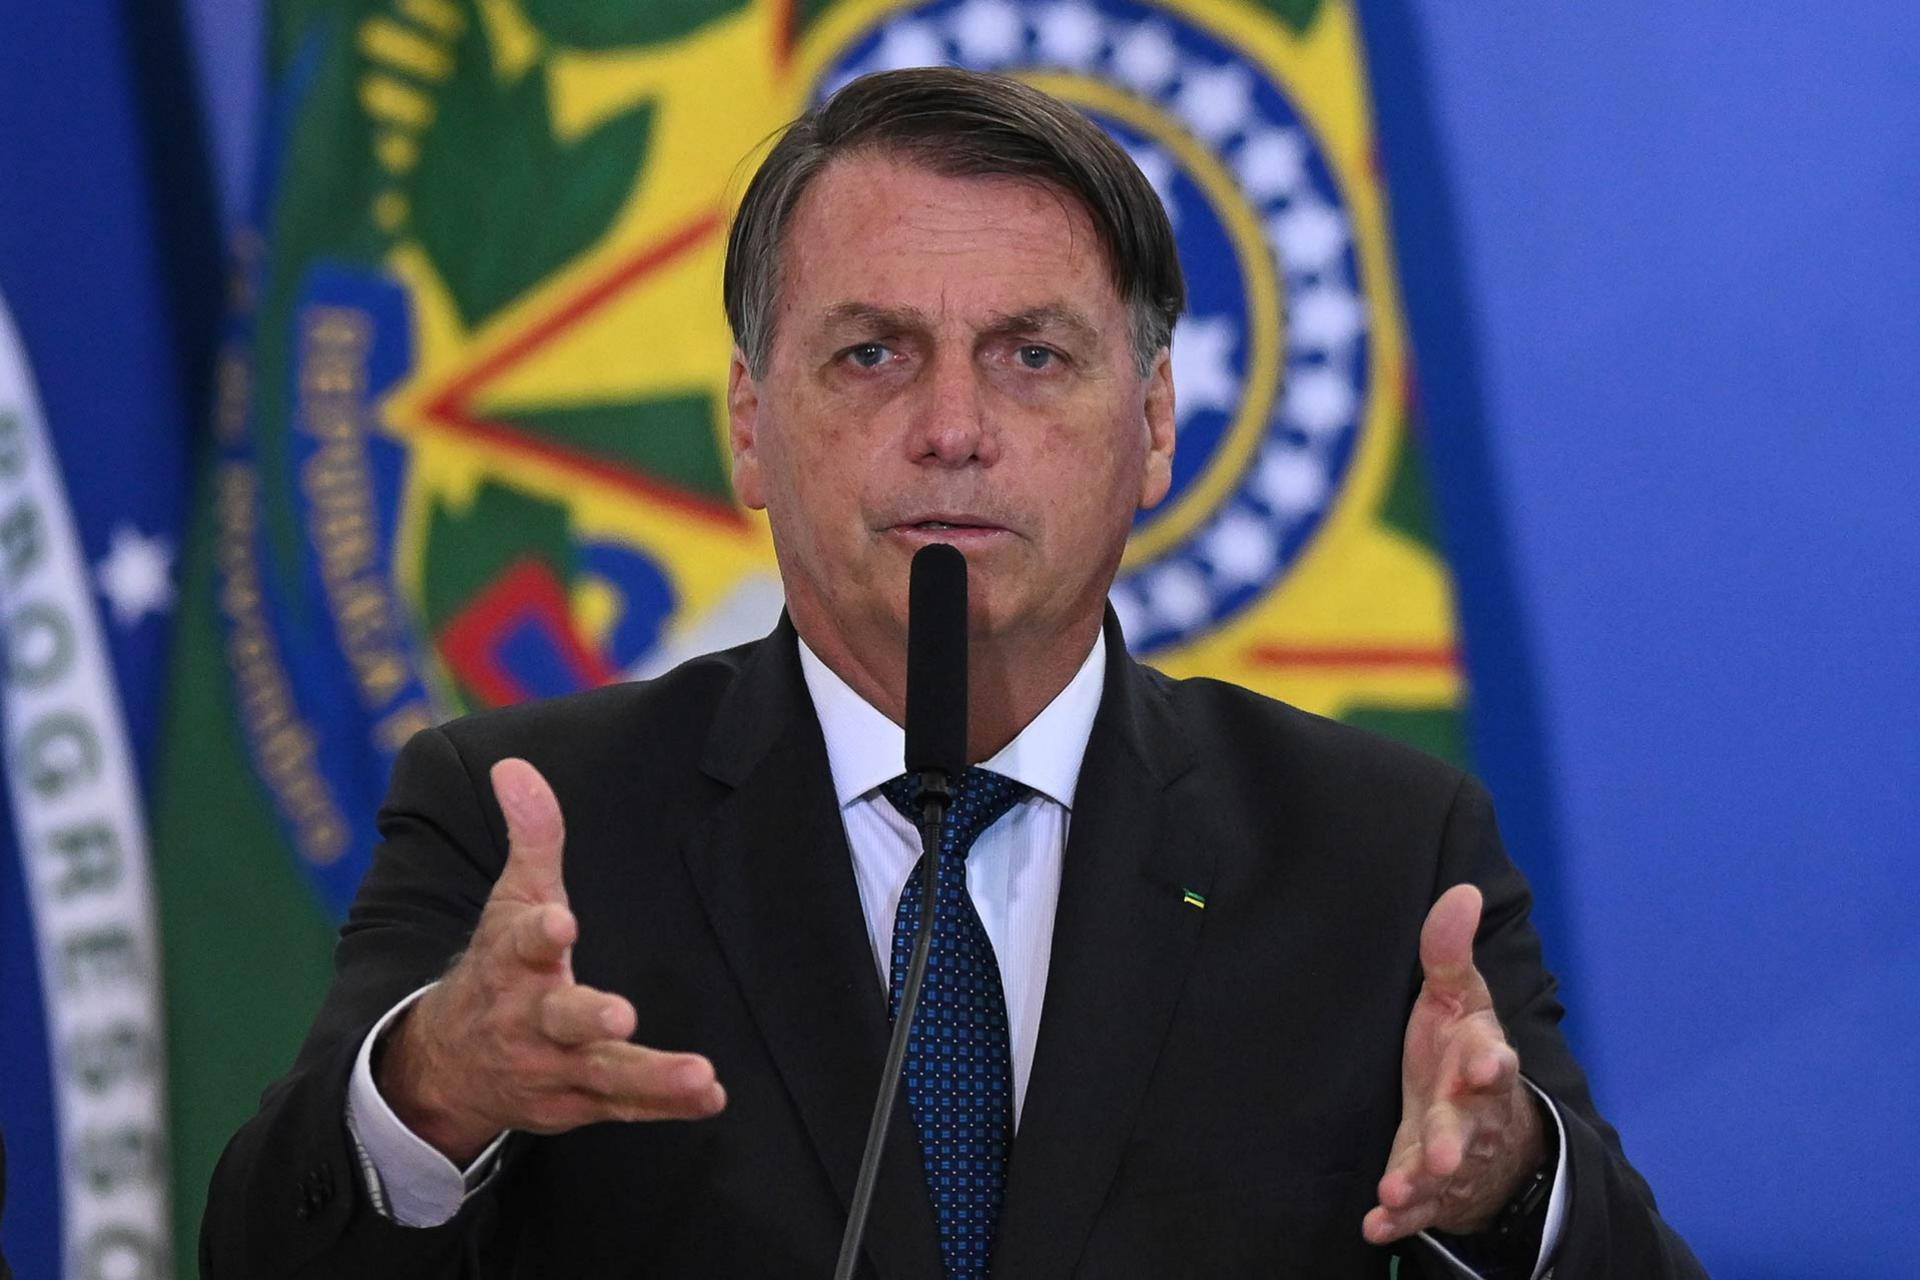 Brazilian President Jair Bolsonaro Named OCCRP's 2020 Corrupt Person of the Year